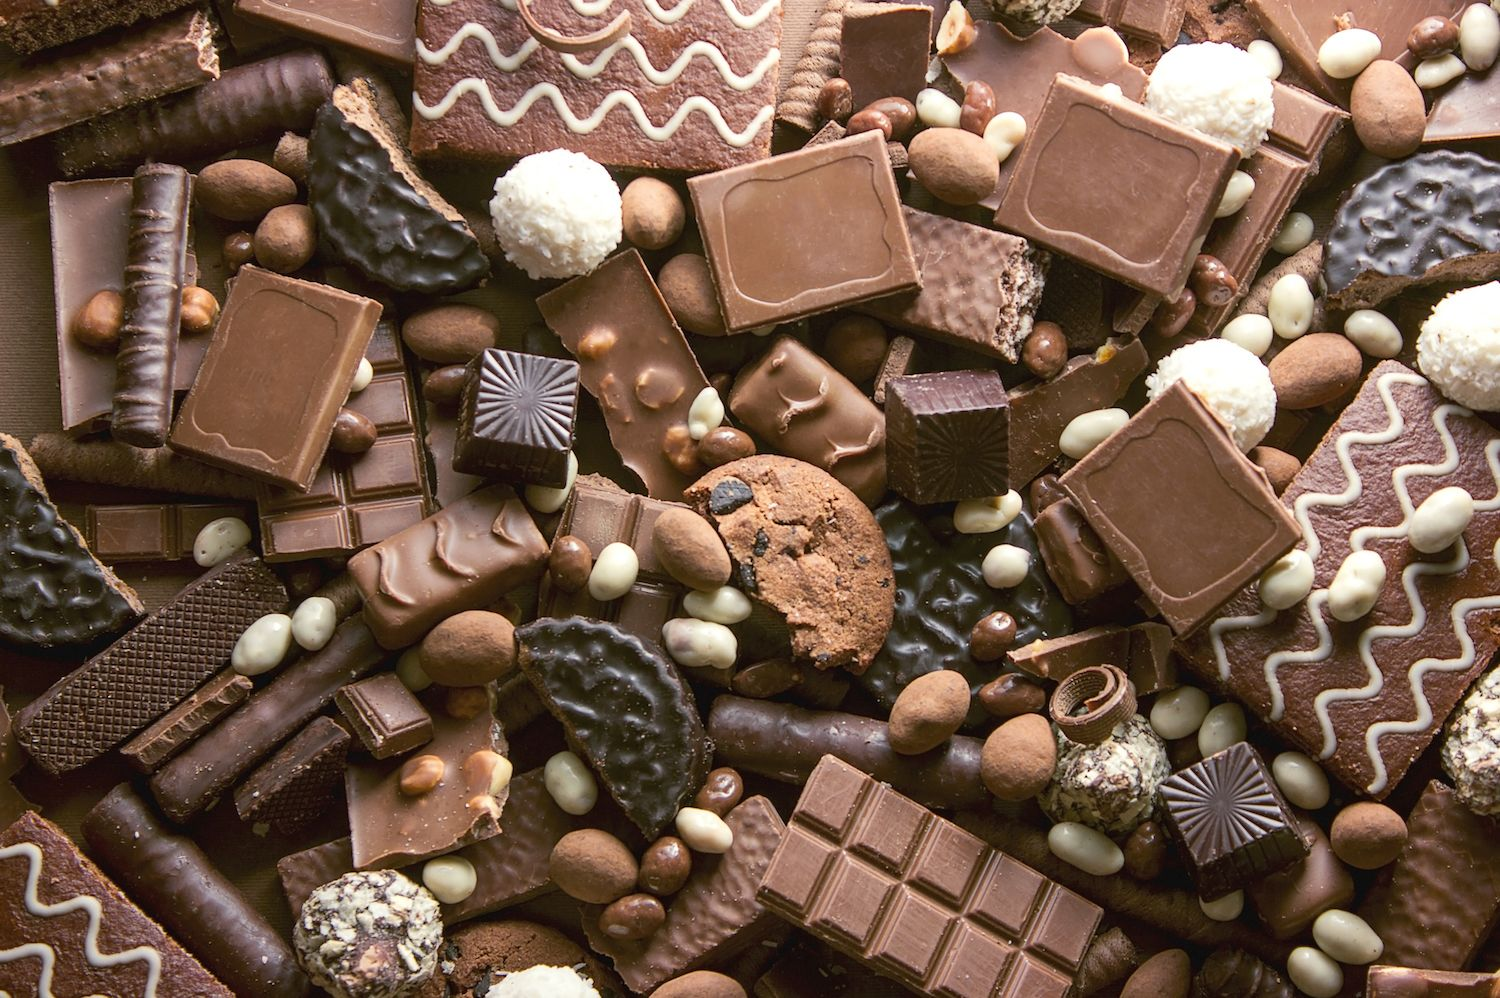 20 Things You Never Knew About Chocolate | Mental Floss